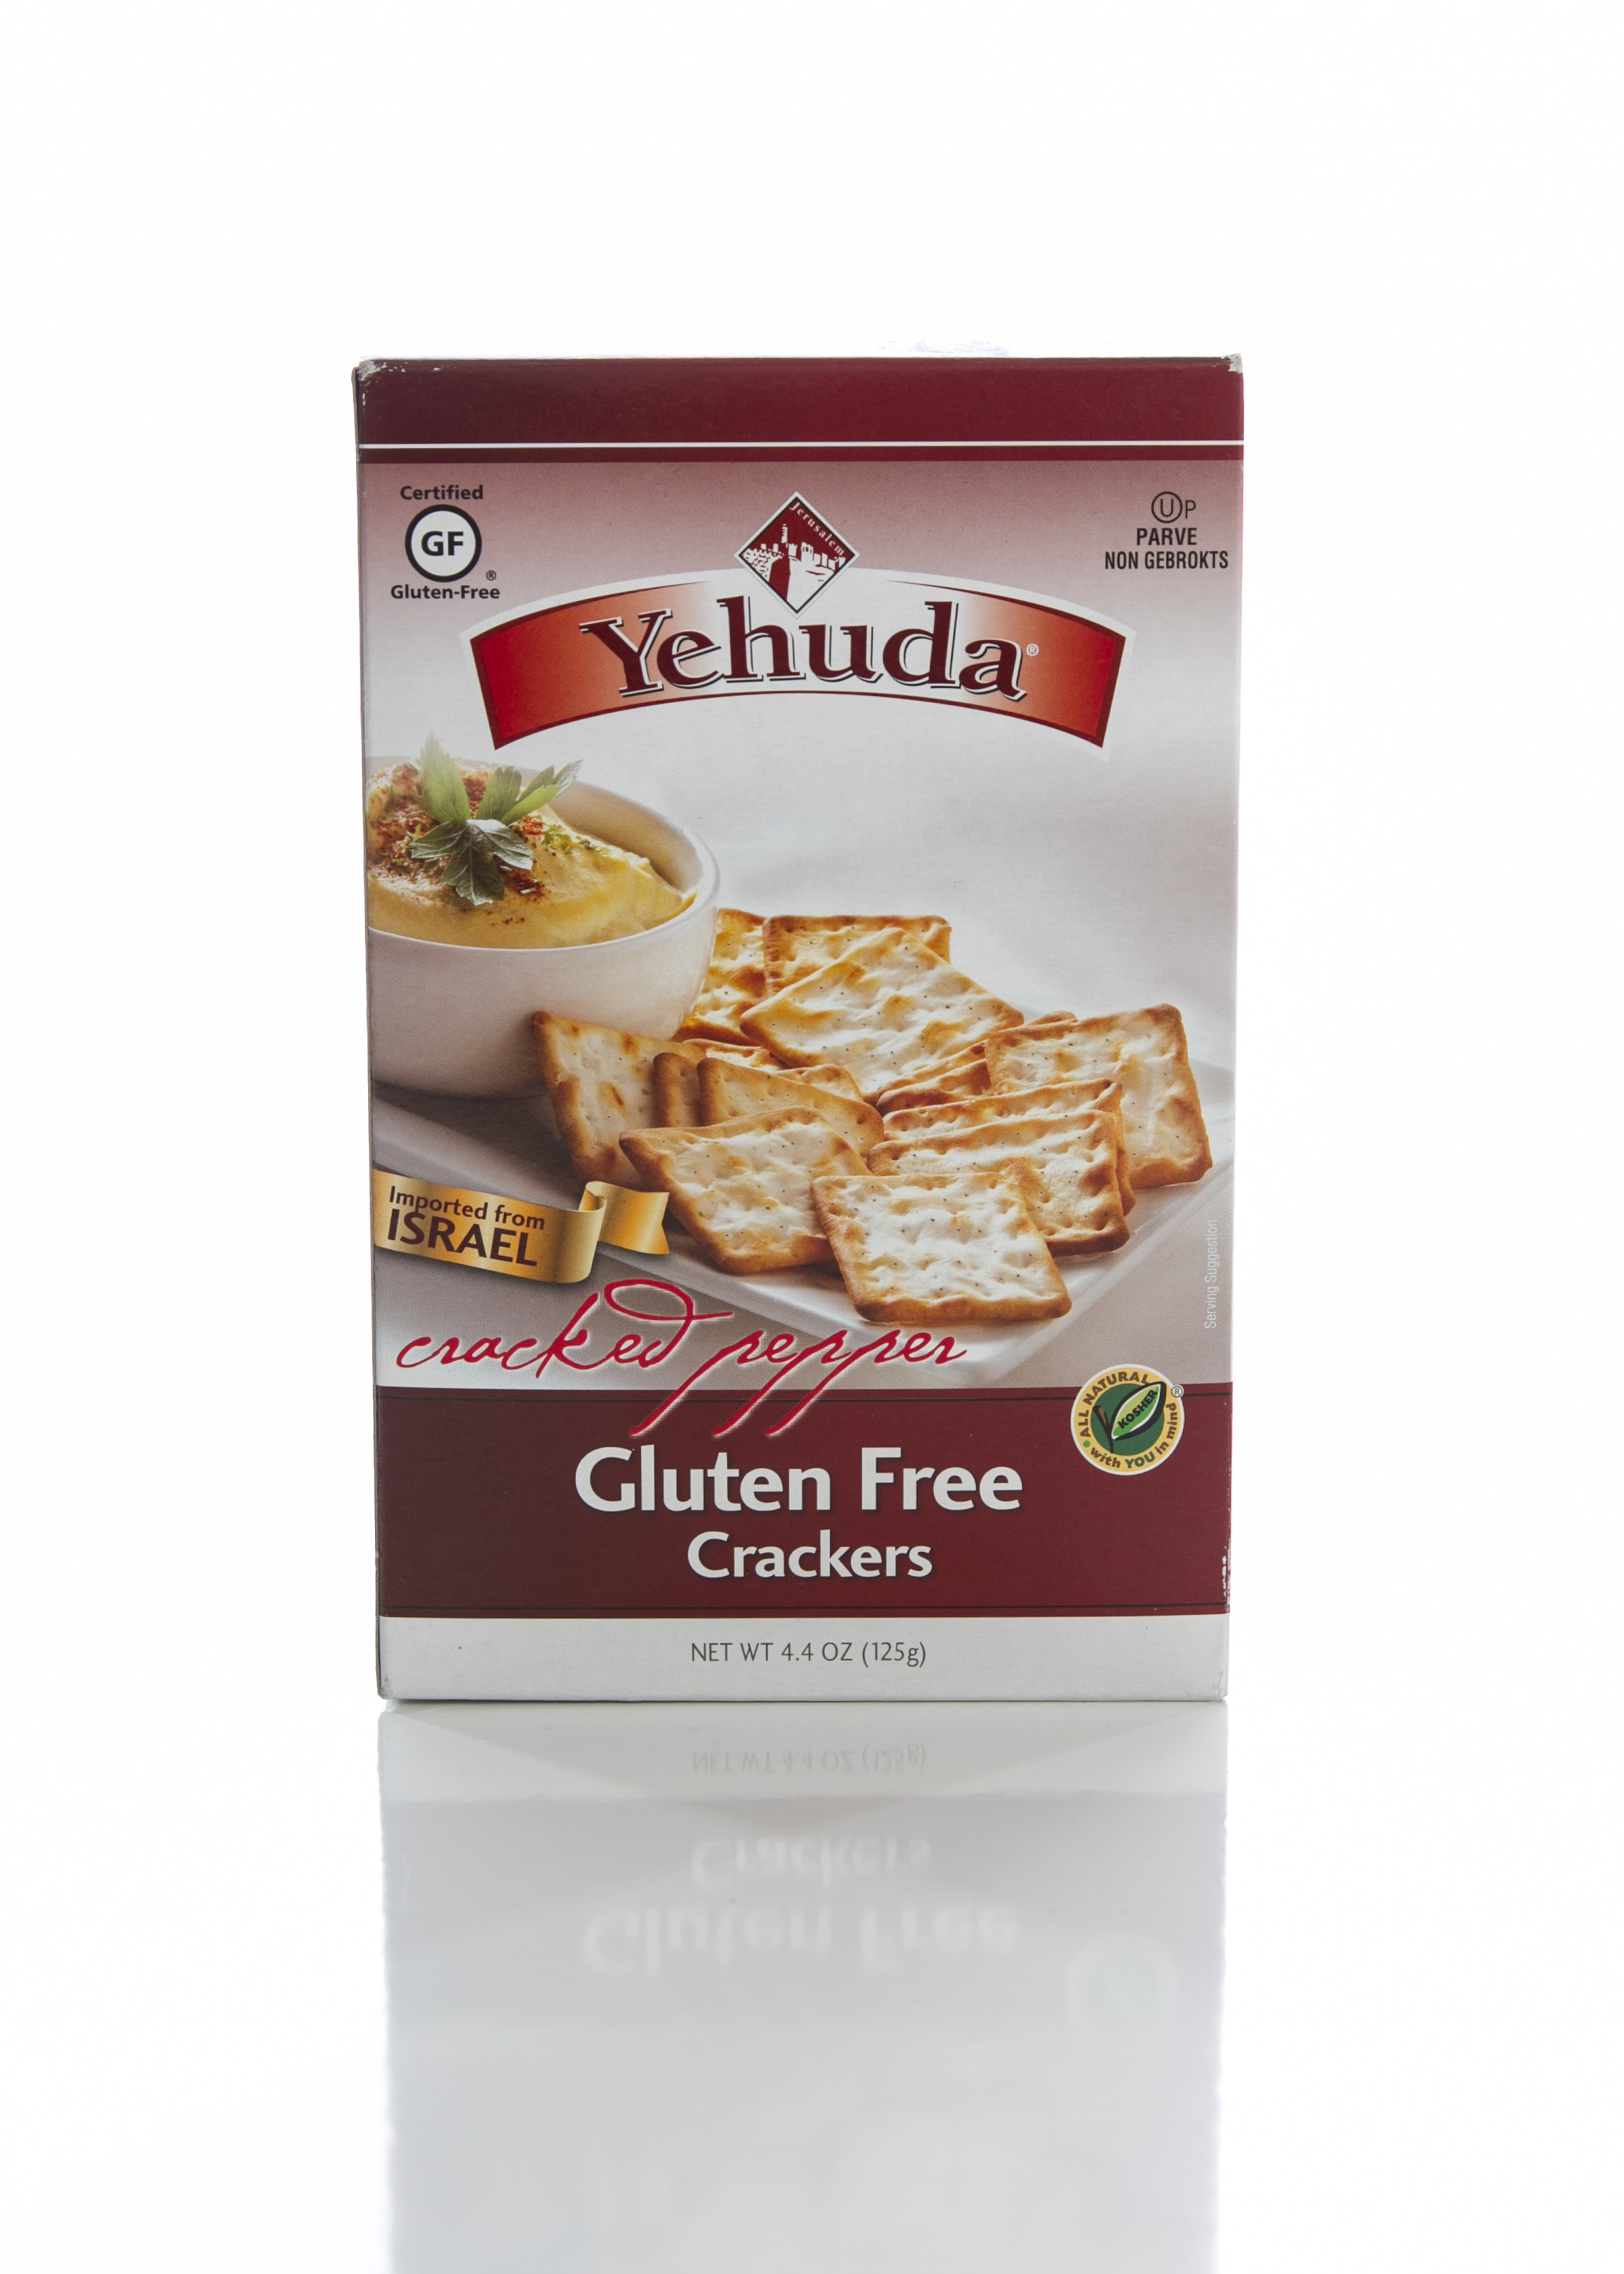 Yehuda Gluten Free Cracked Pepper Cracker, 4.4 Oz. Box (6 Per Case)